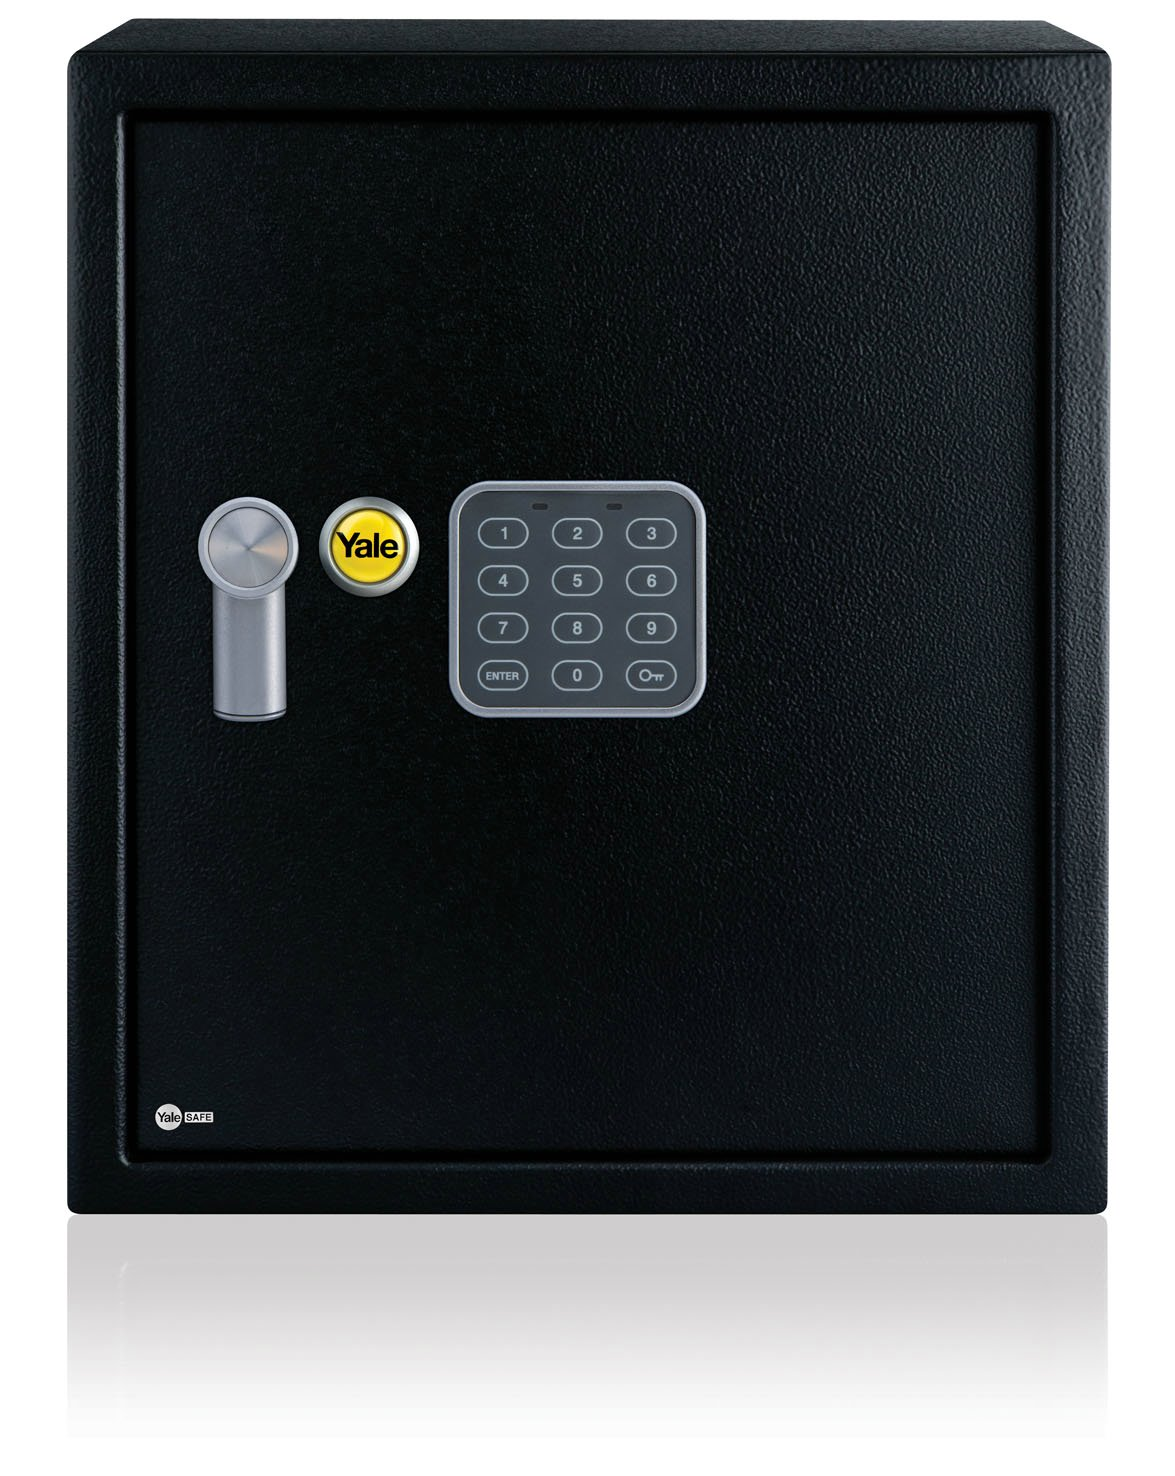 YSV/390/DB1 - Value Office Safe